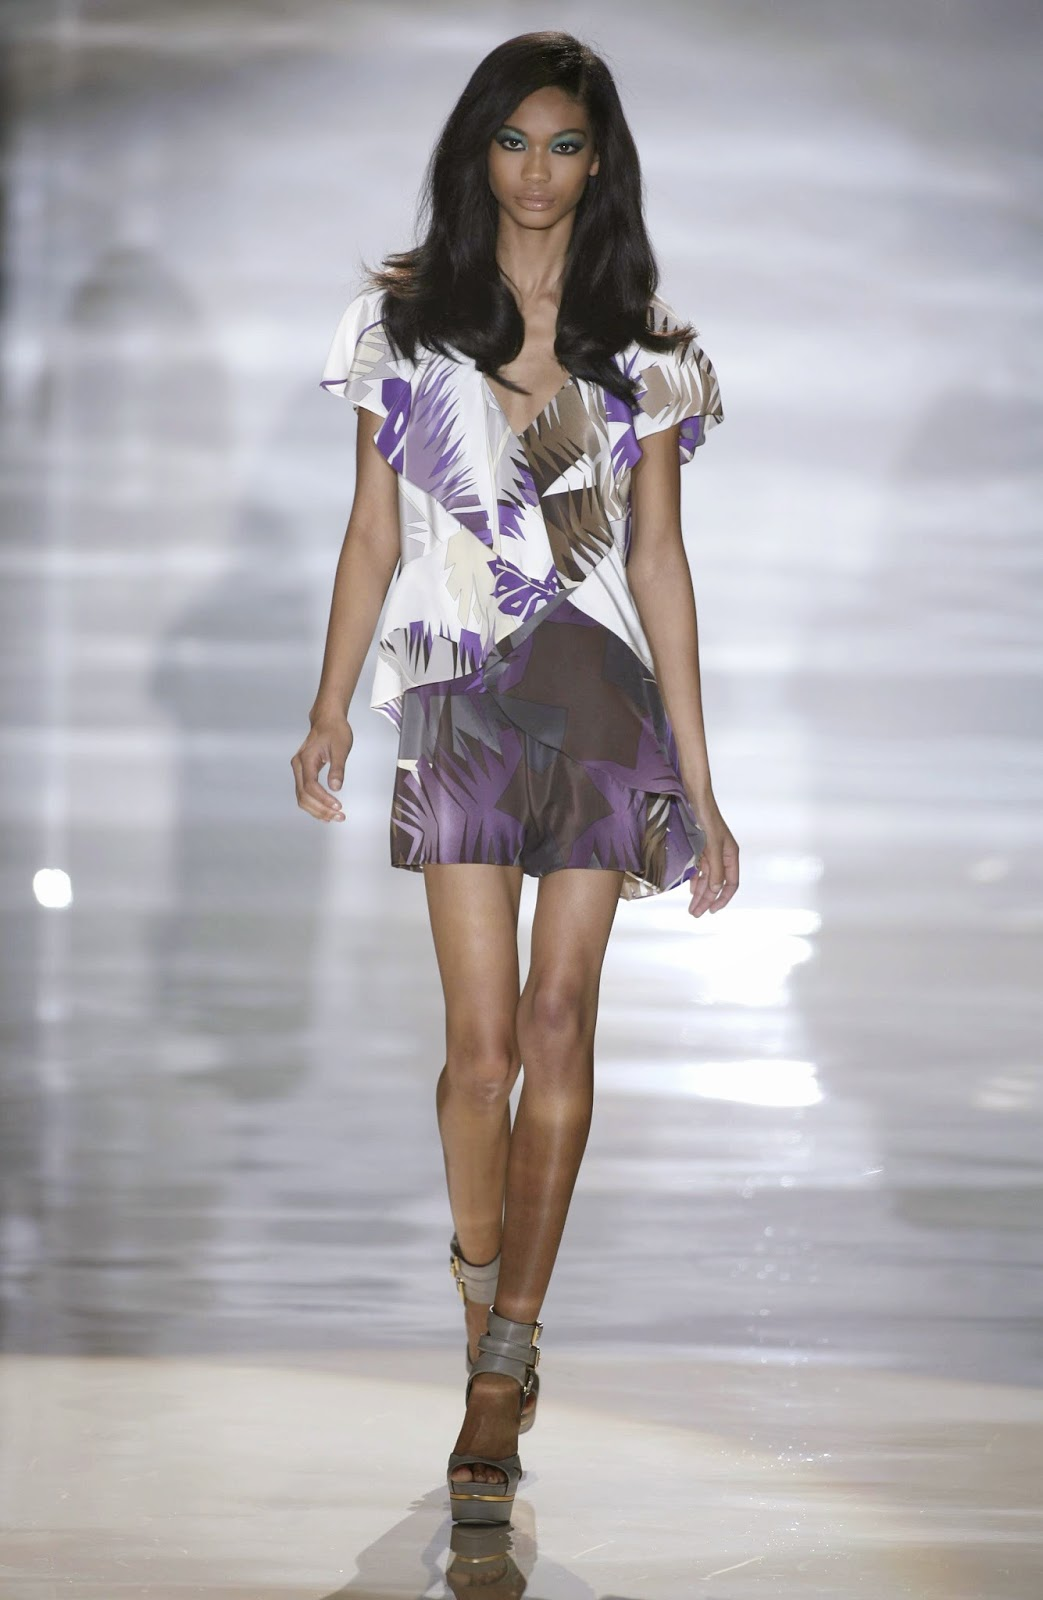 Anorexic Model 98